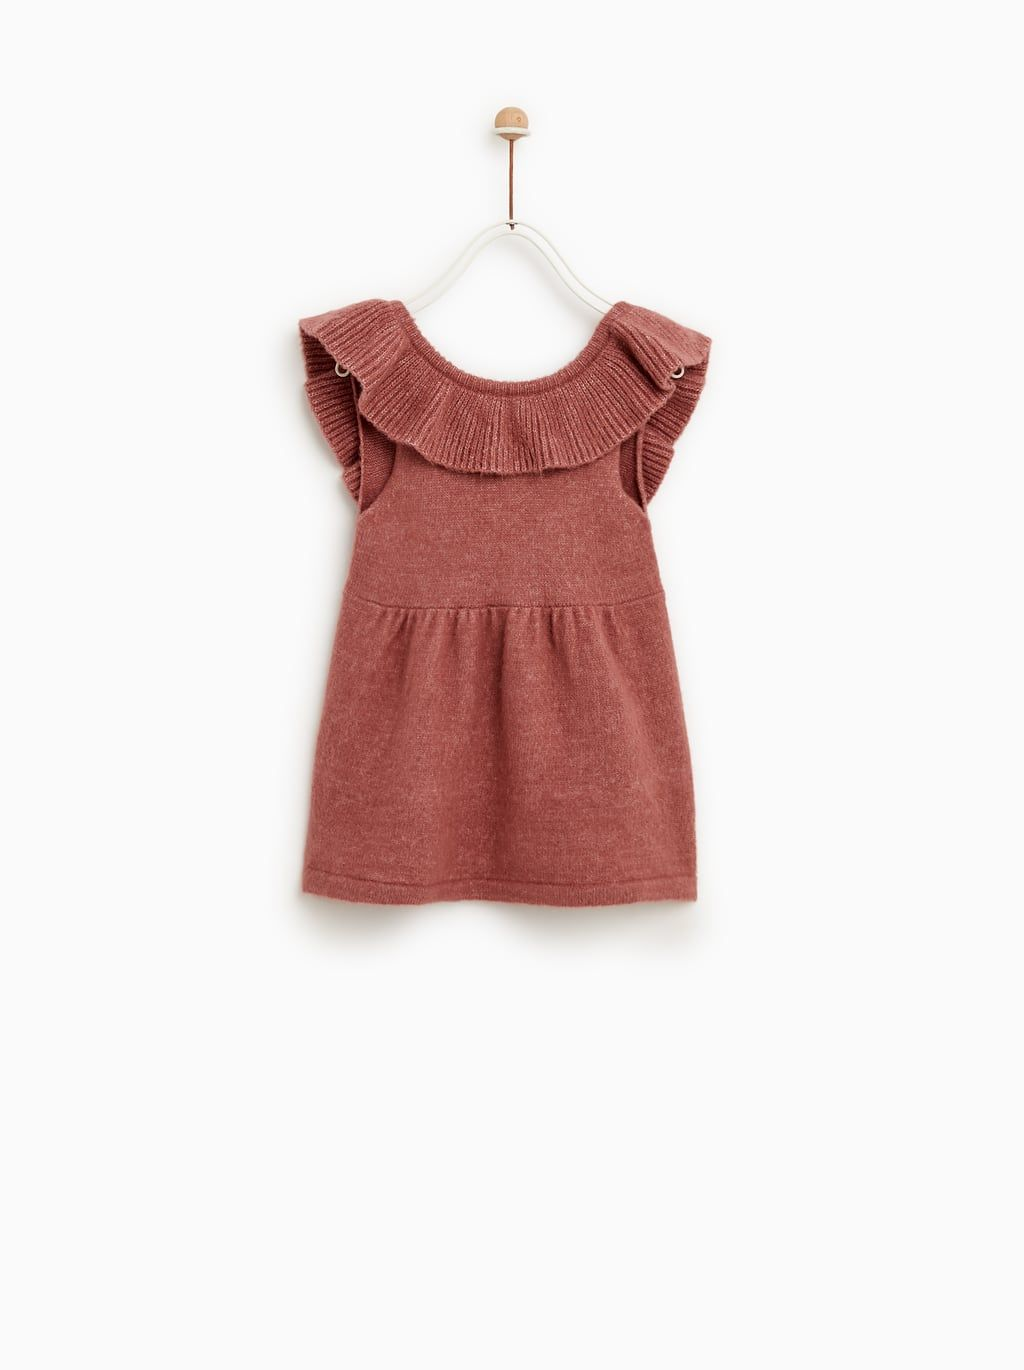 Plaid Knit Sweater Zara Baby Clothes Dresses Kids Girl What To Wear Fall